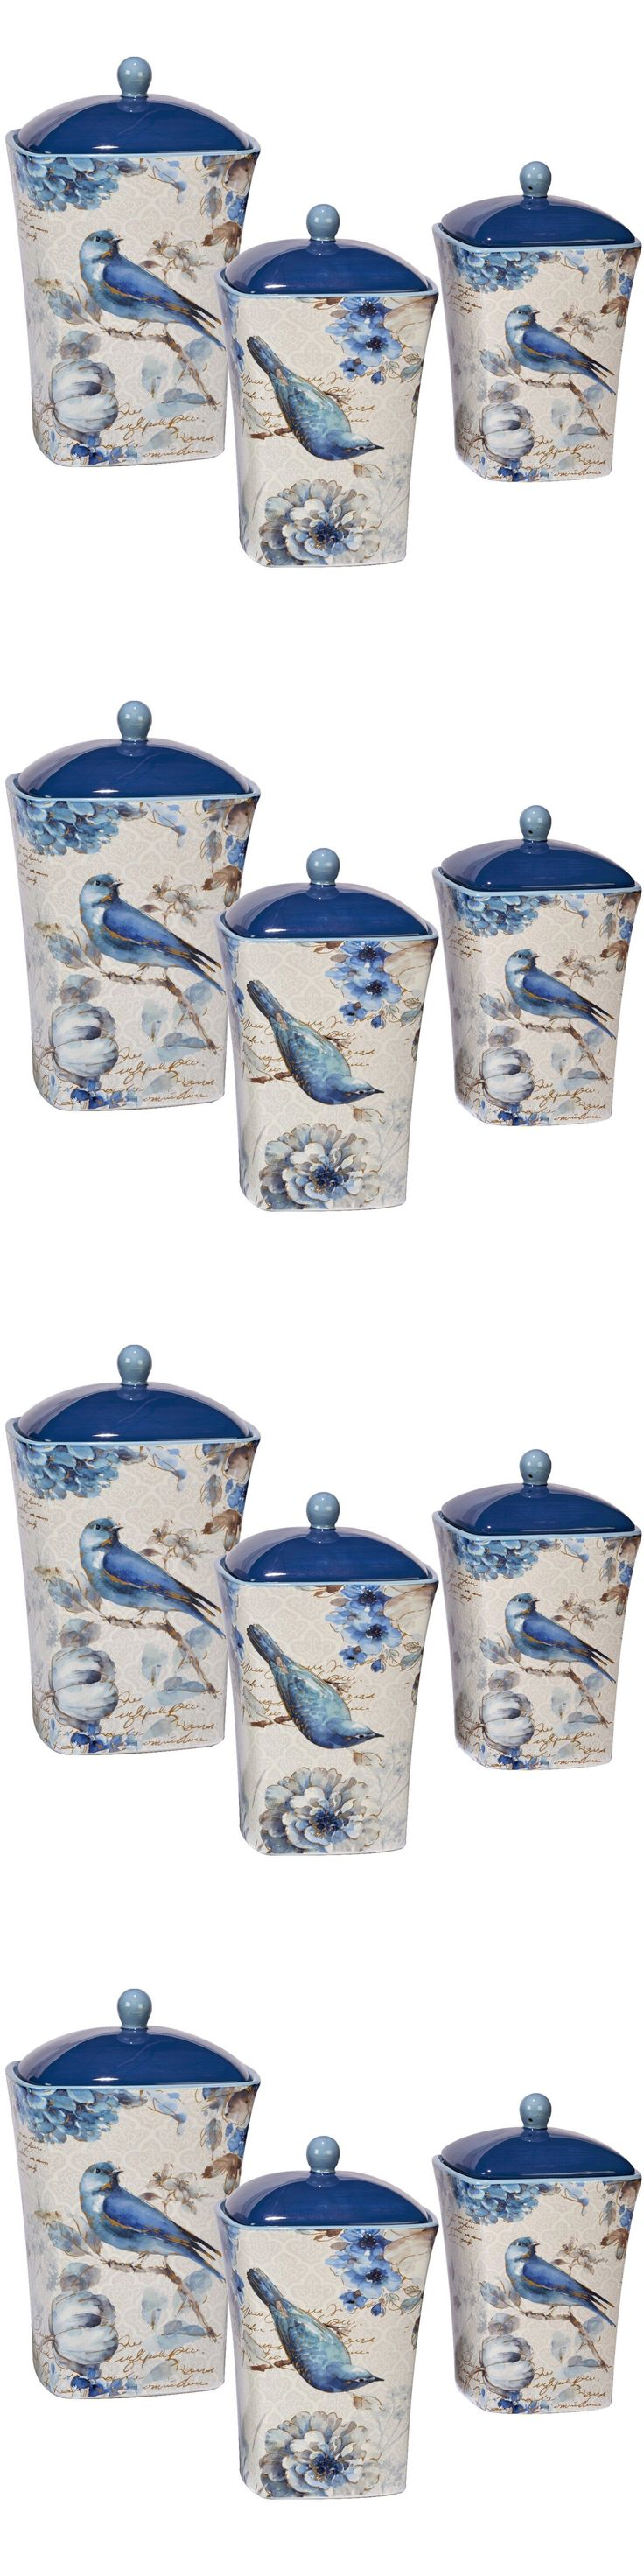 Tuscan old world drake design medium berry kitchen canisters set of 3 - Canisters And Jars 20654 Kitchen Canister Set 3 Piece Ceramic Sugar Coffee Storage Lids Bird